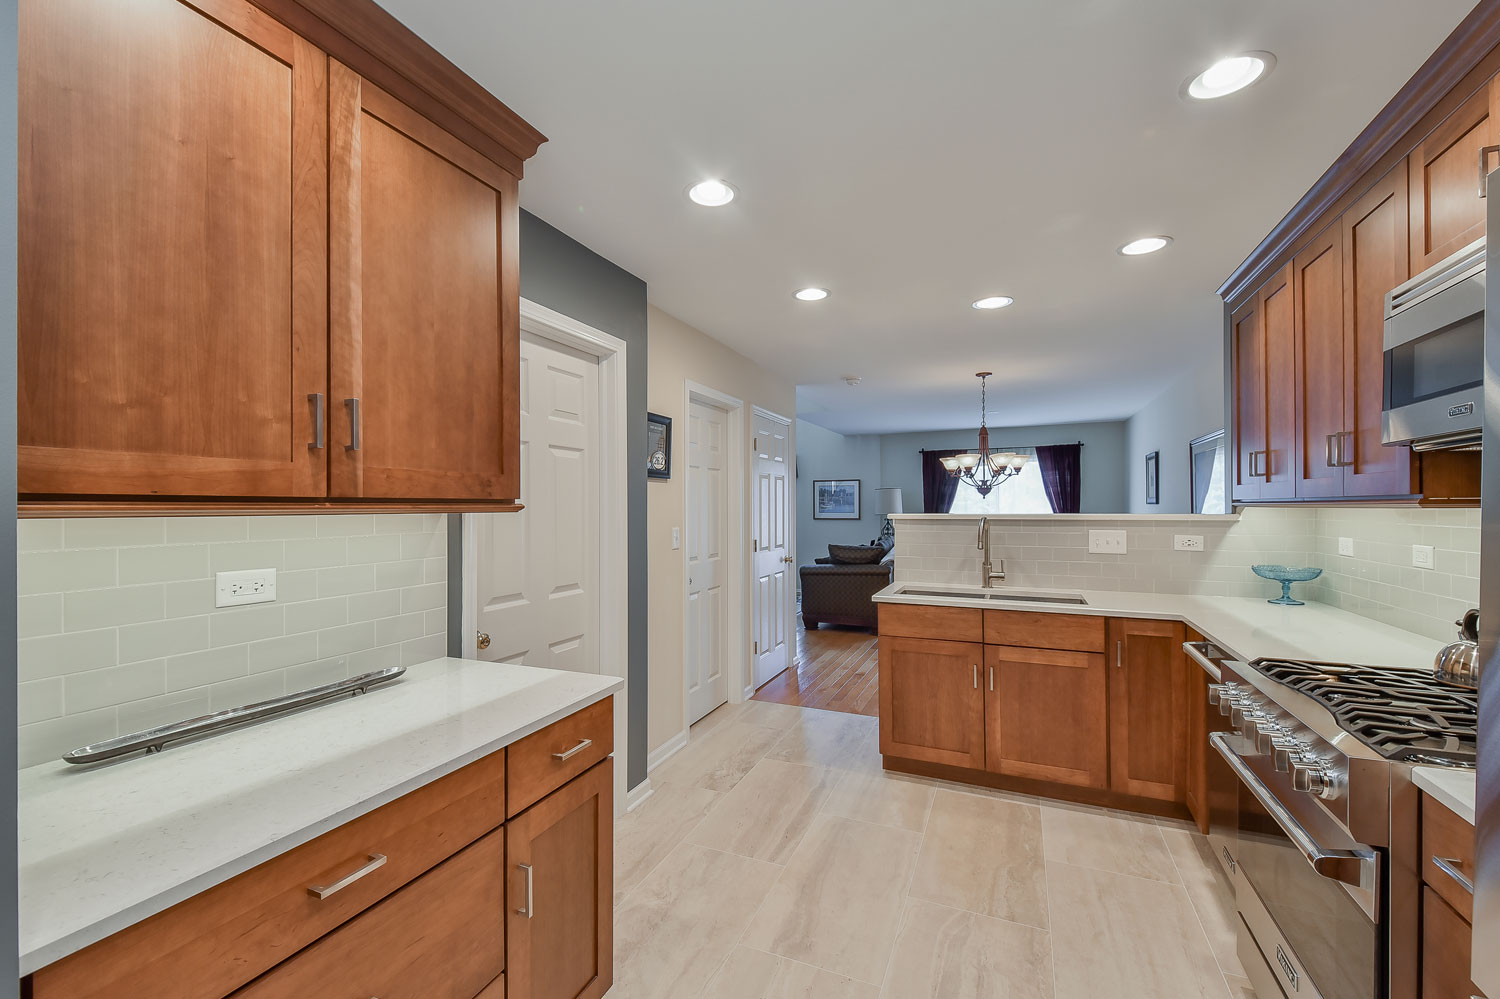 Gorgeous Kitchen Renovation In Potomac Maryland: Richard's Kitchen Remodel Pictures